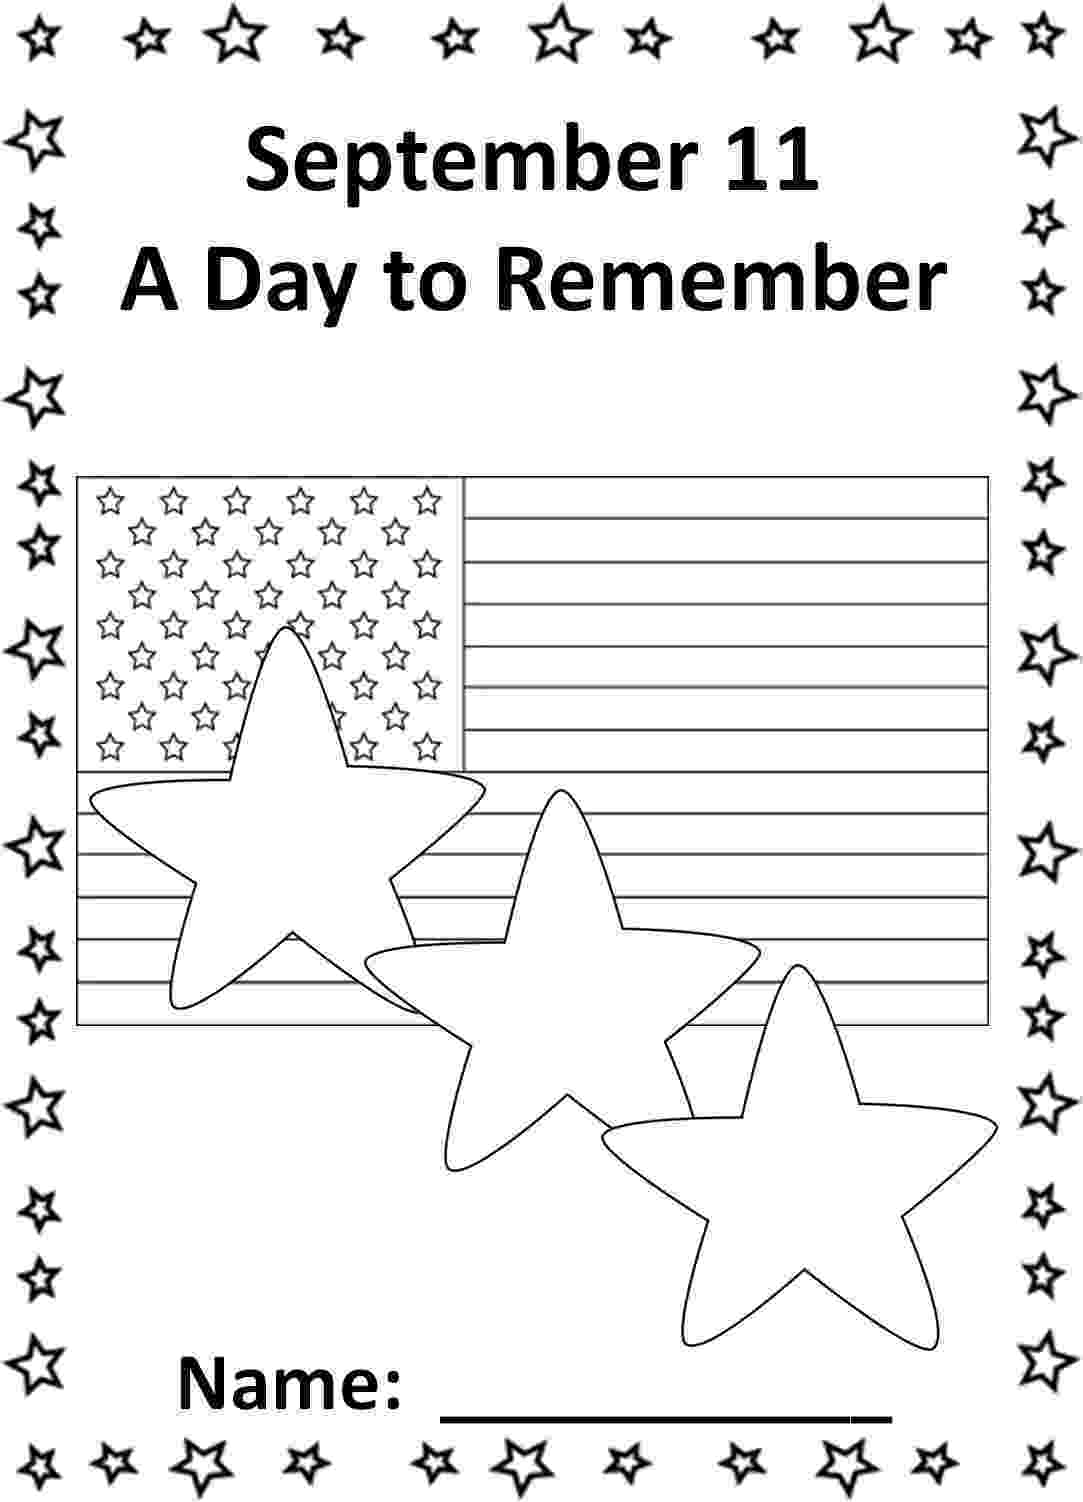 september 11 coloring pages patriot day september 11th 911 free printable coloring 11 september pages